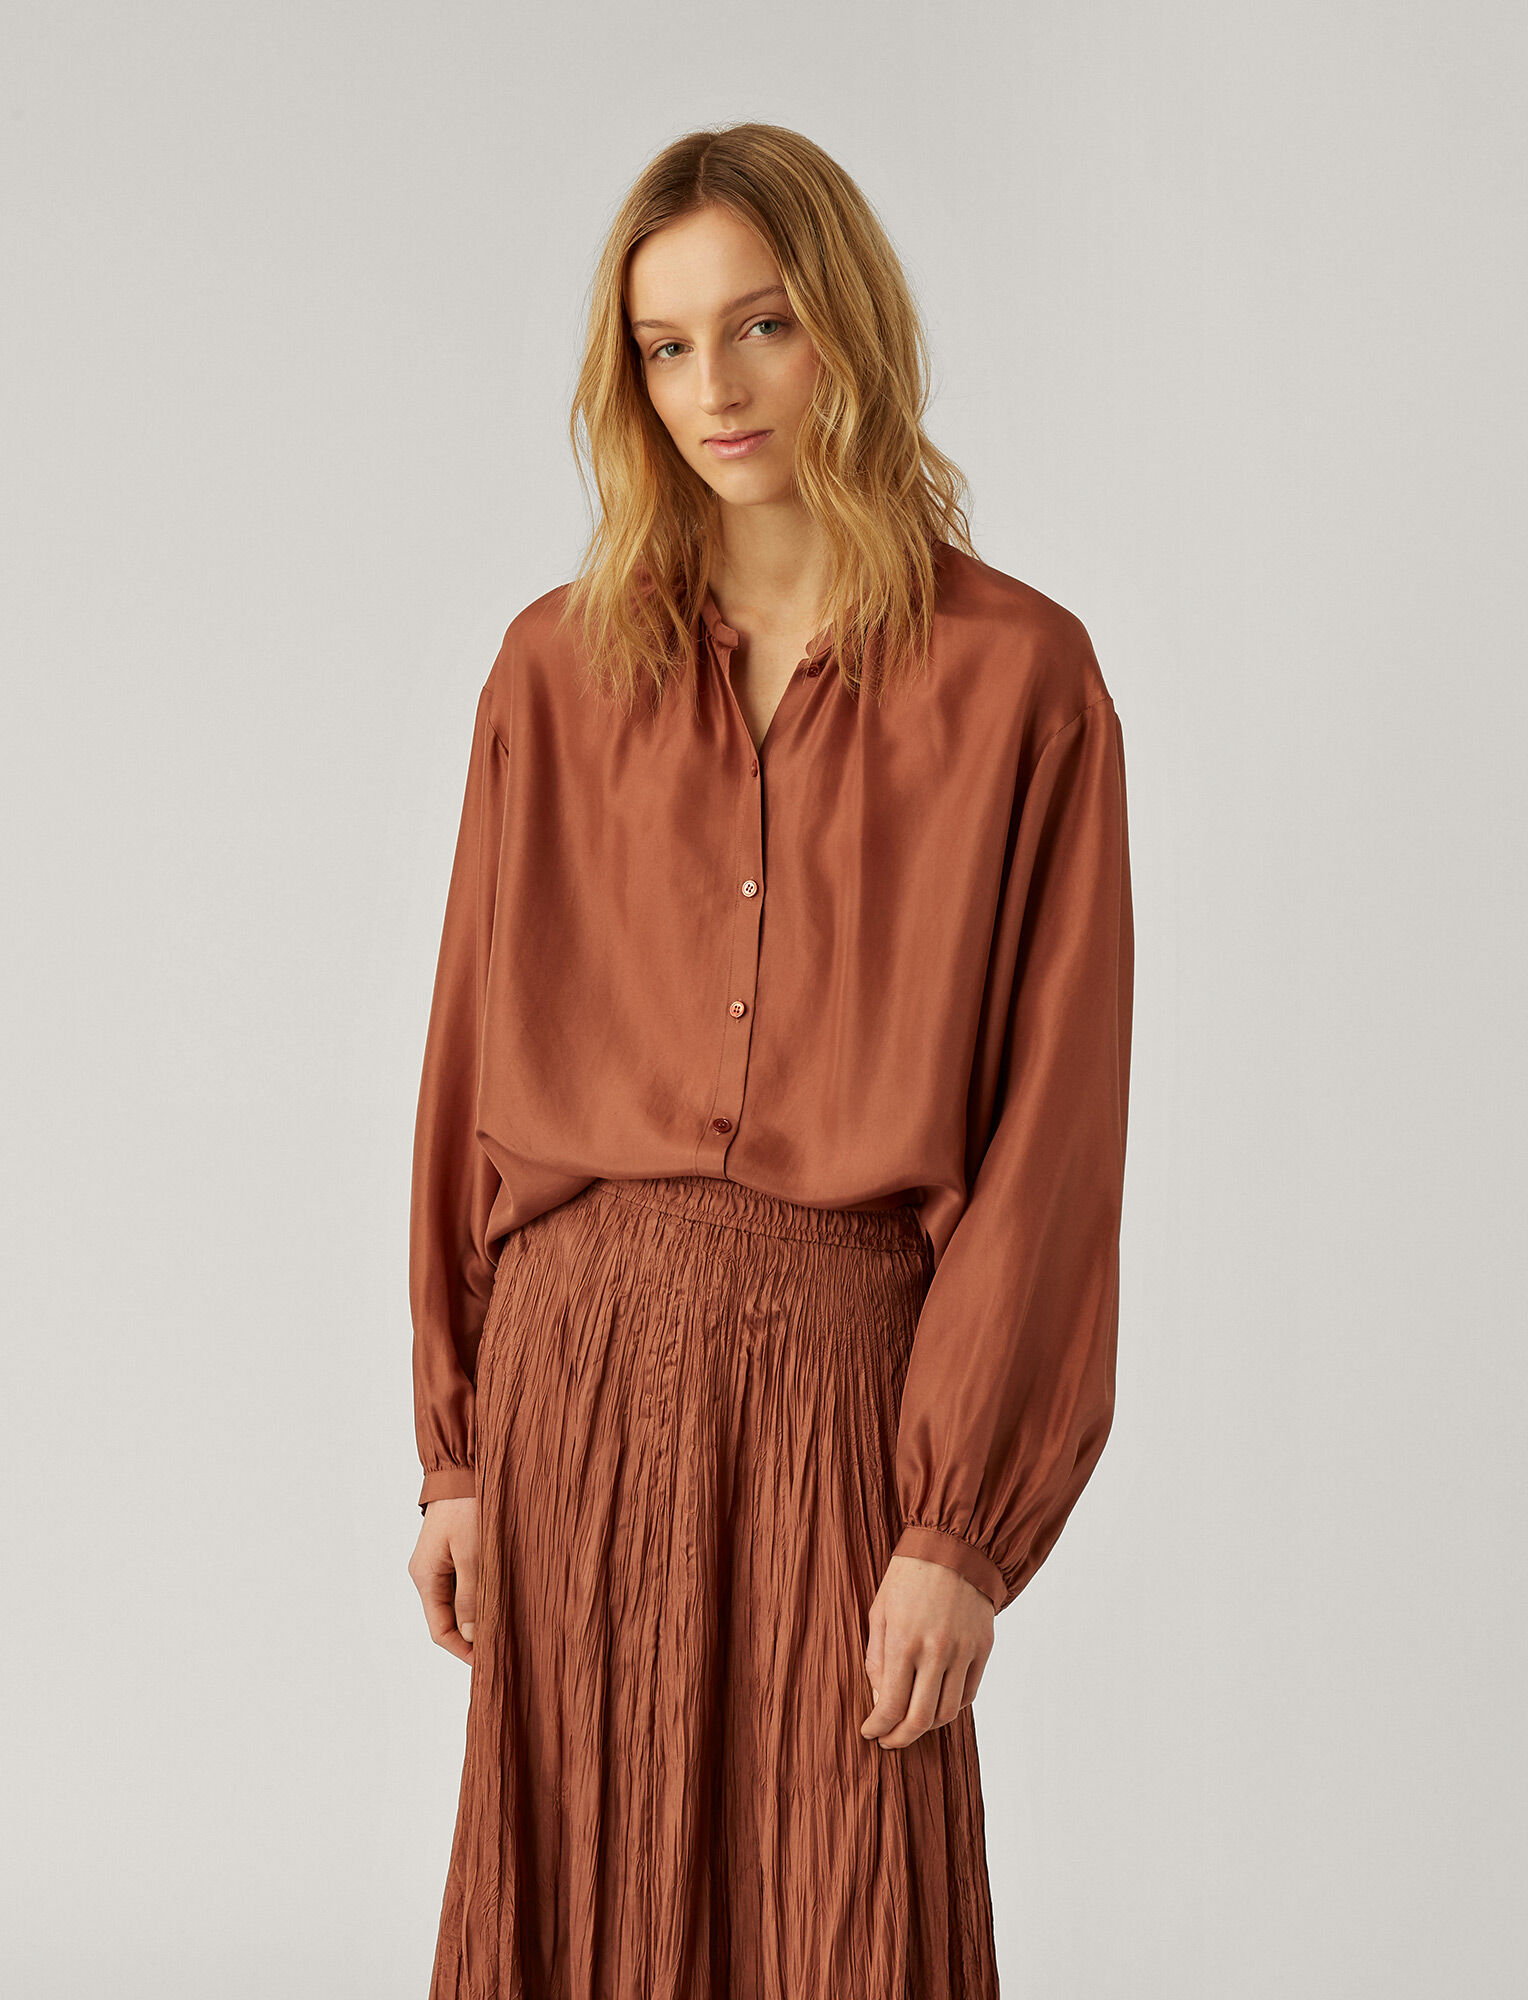 Joseph, Bowell Silk Habotai Blouse, in DUSTY ROSE